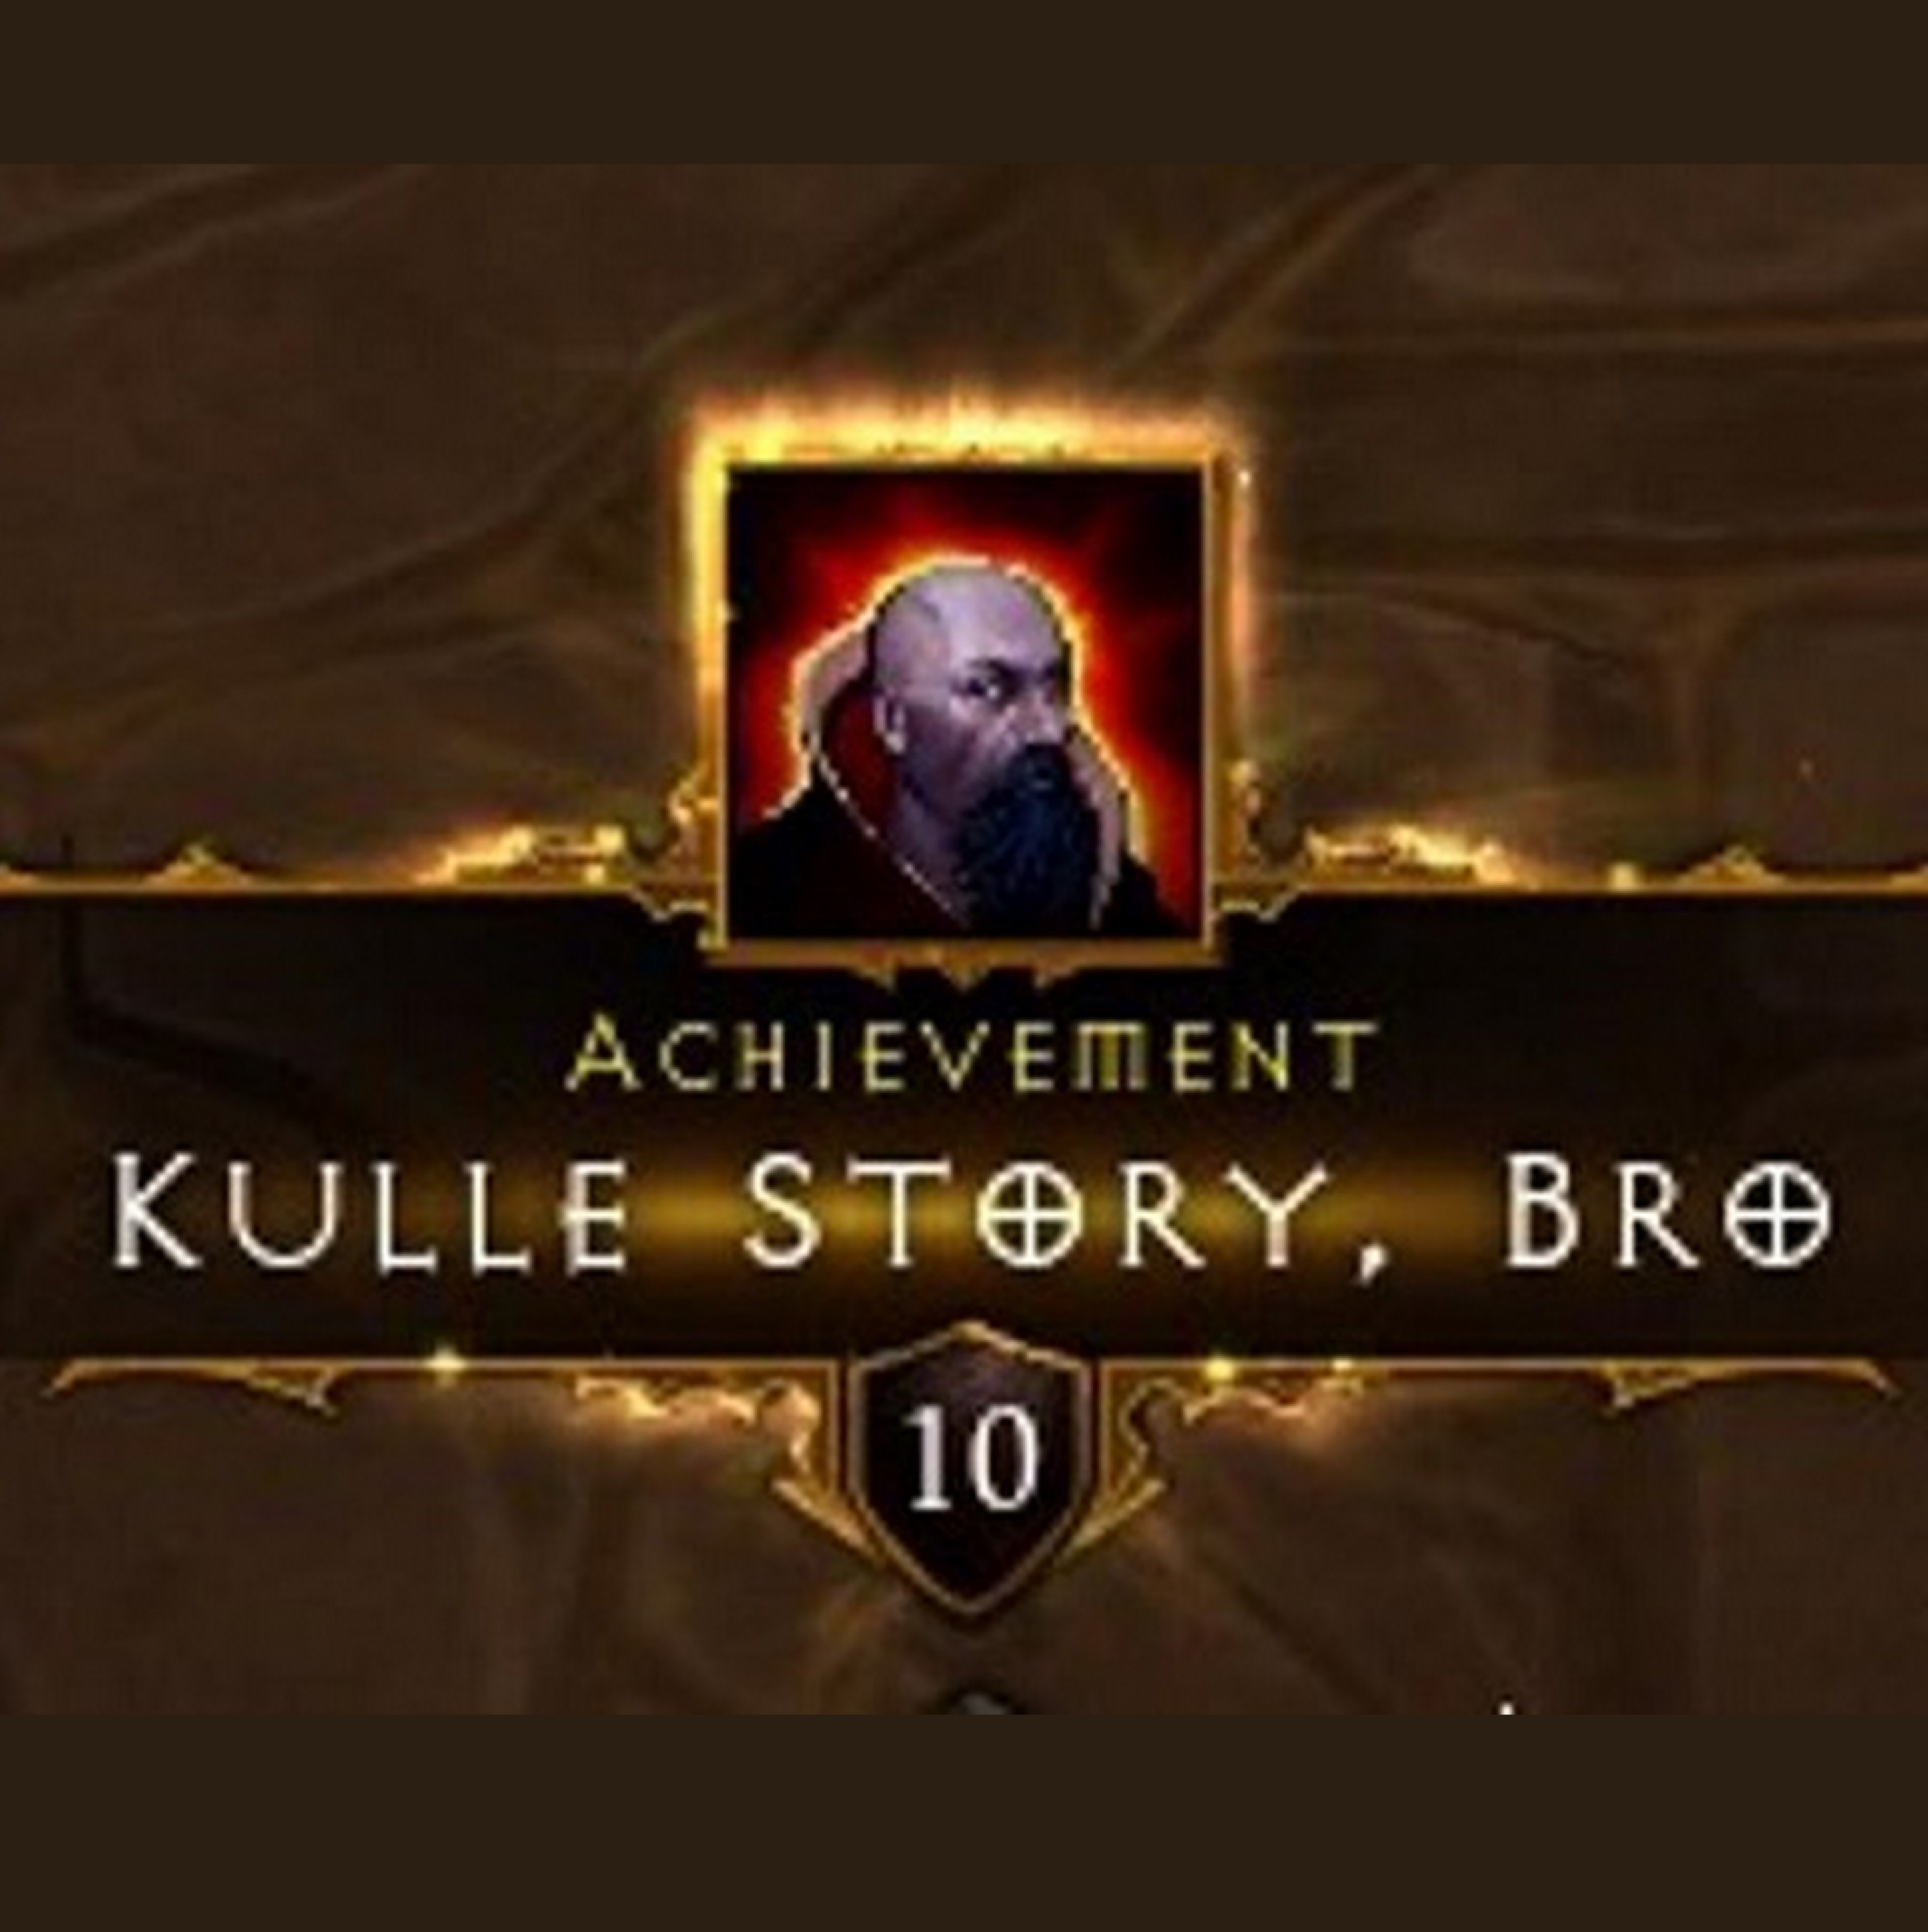 Kulle Story Bro - A Diablo 3 Podcast Episode 23